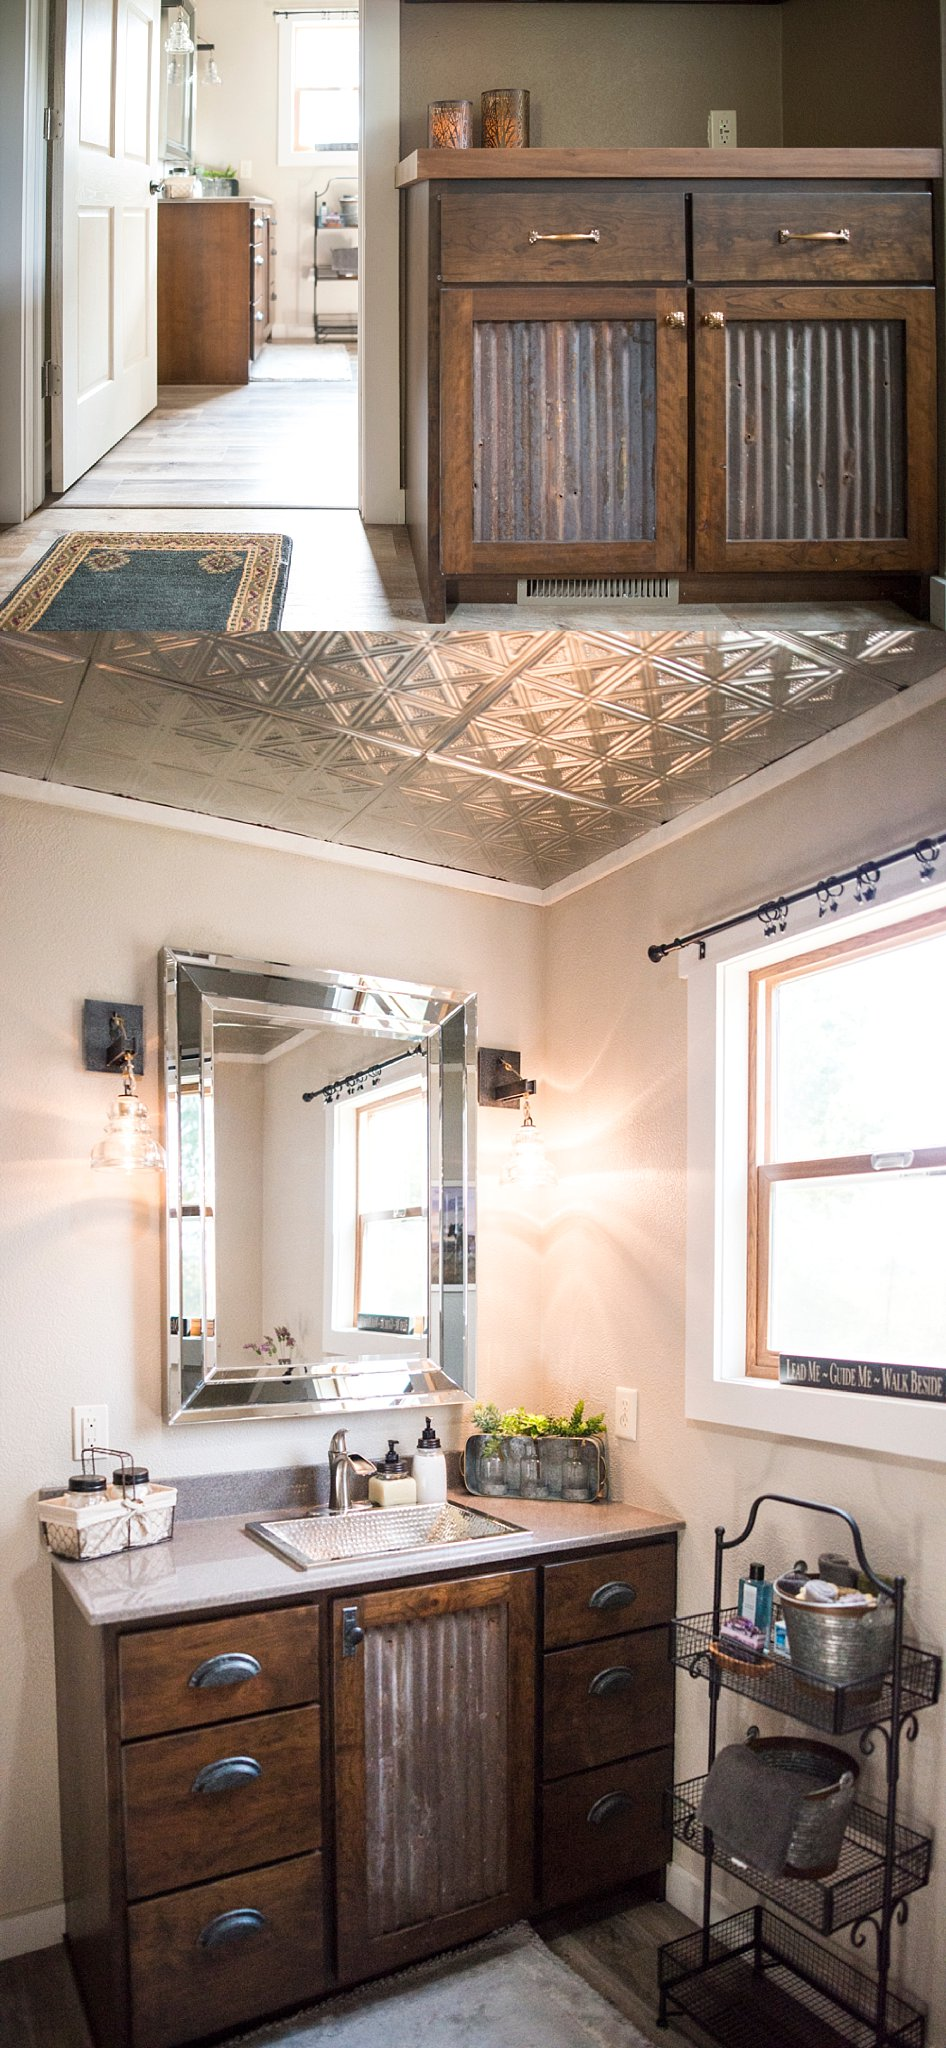 """Top: At the other end of the hallway from the bedroom is the bathroom. Turn right in front of the drop zone to leave from the front door.Bottom: Of this space Anthea says, """"You have to have a little bling""""."""